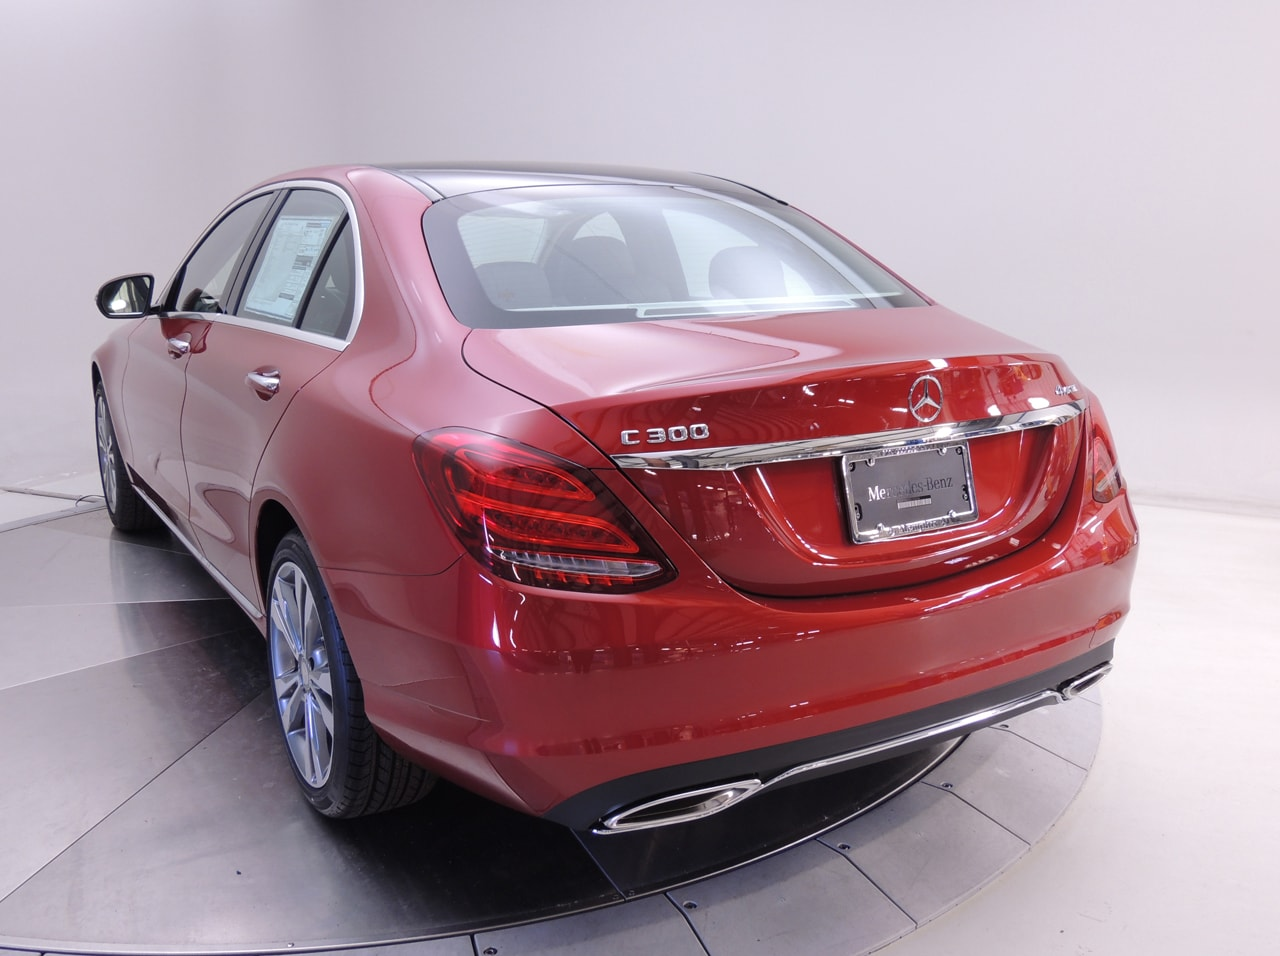 class 2016 mercedes benz c class c300 4matic for sale in memphis tn. Cars Review. Best American Auto & Cars Review